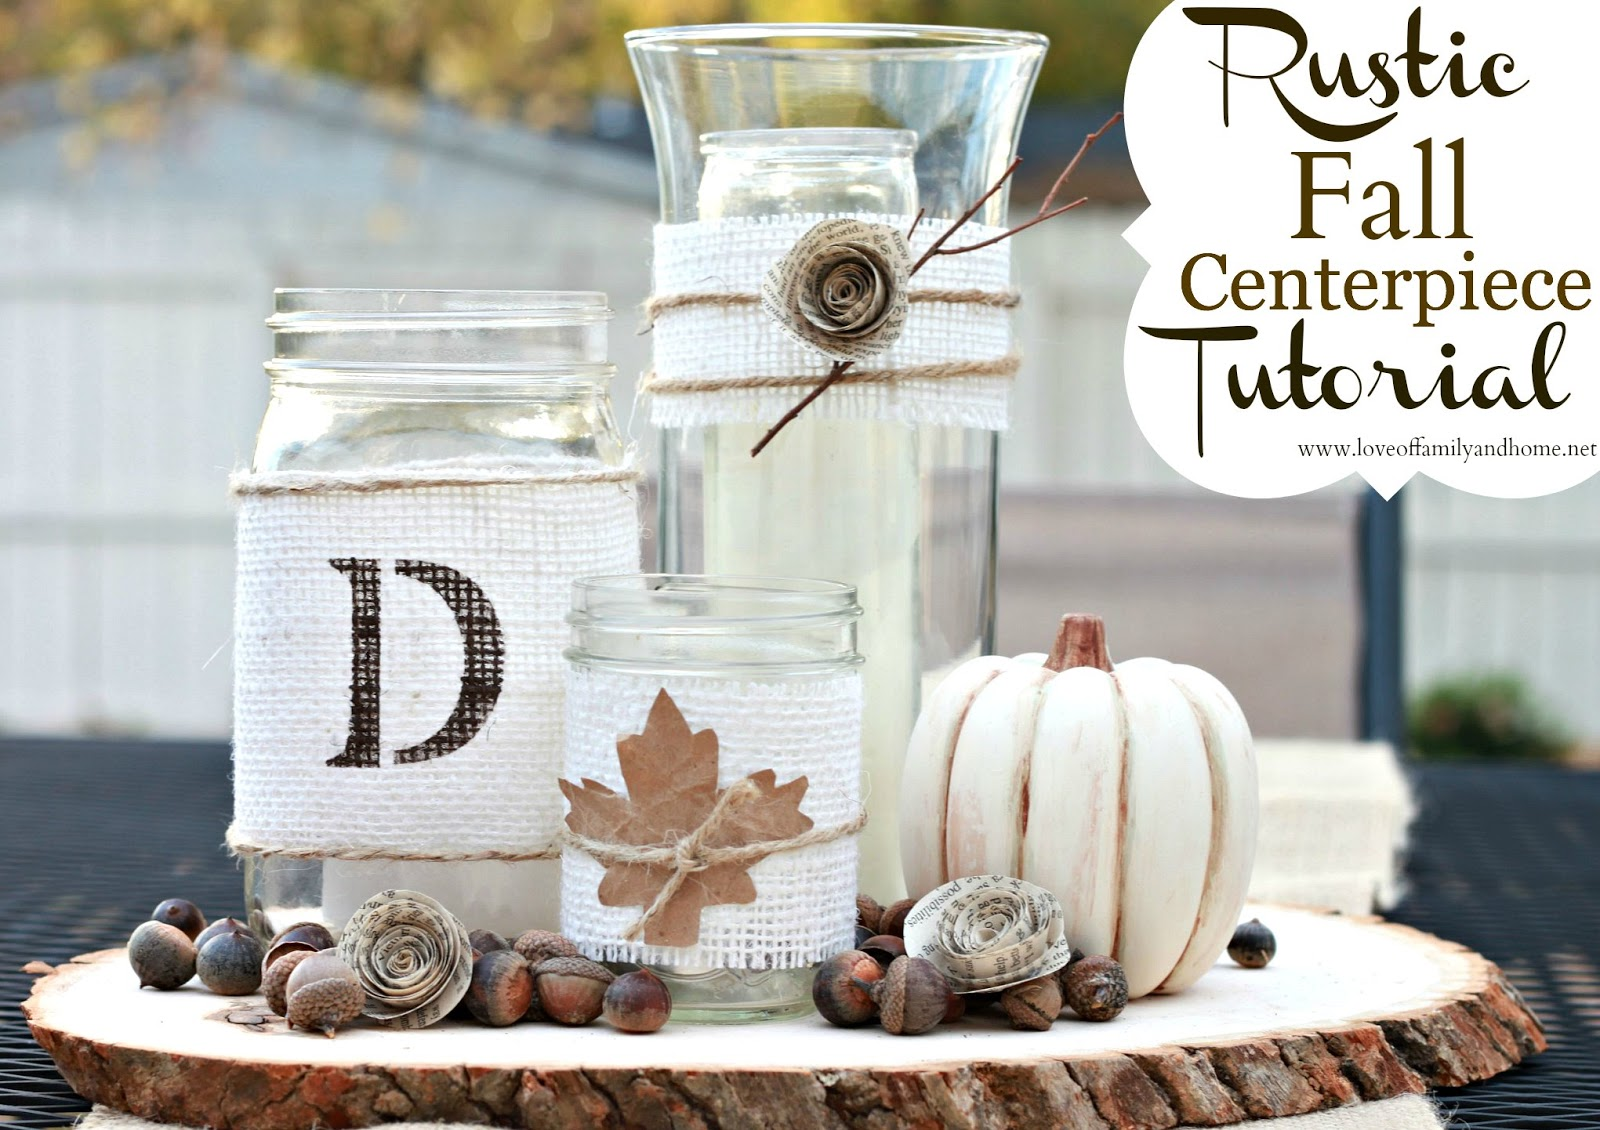 Fall Decorating with Mason Jars - Savvy Nana